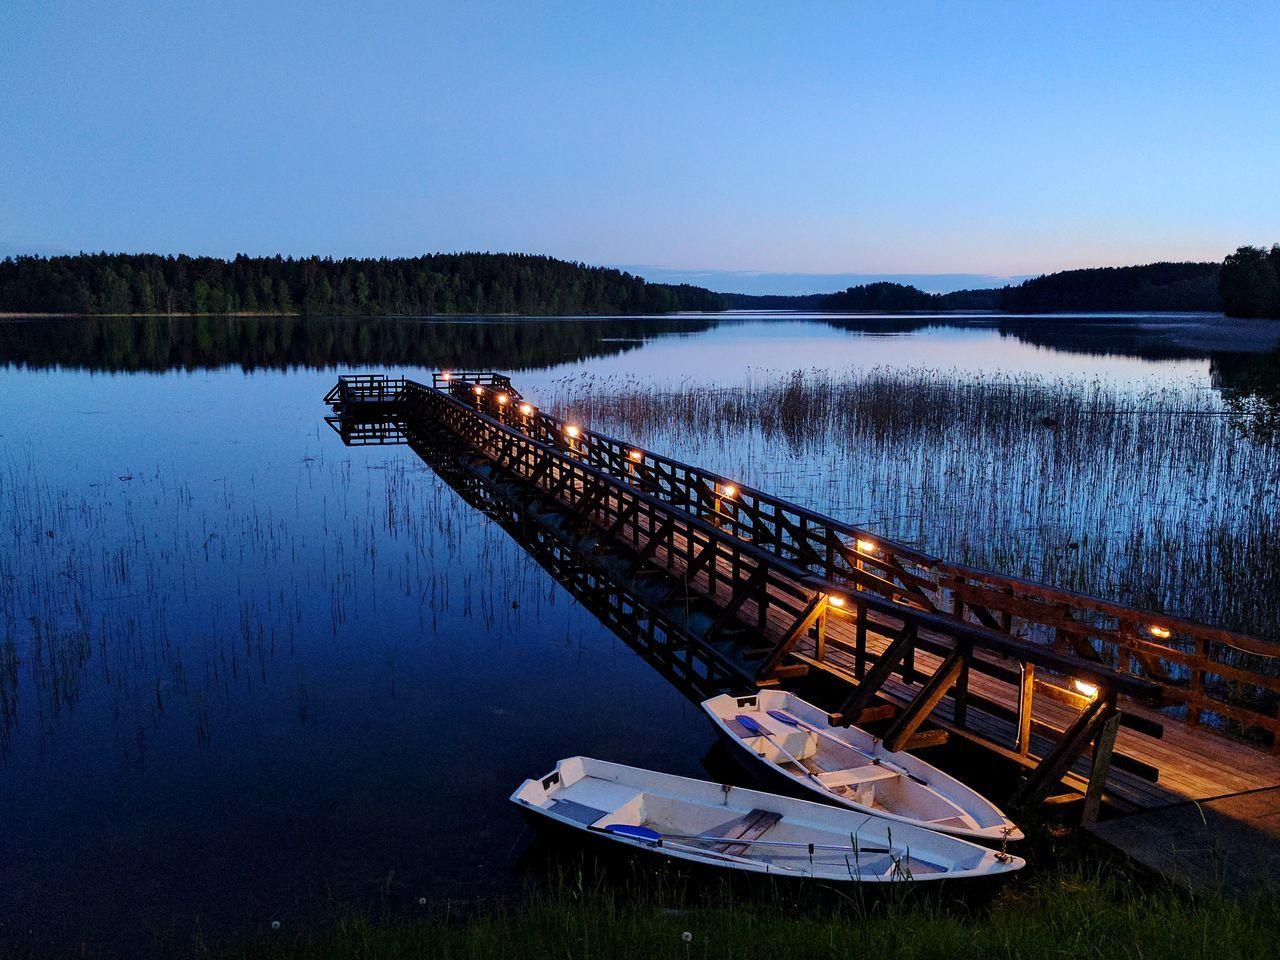 Evening on the lake Water No People Tranquility Outdoors Nature Sky Beauty In Nature After Sunset Lake Lake View Boats Lake Bridge Horizon Over Water Clear Sky Quiet Moment No Wind